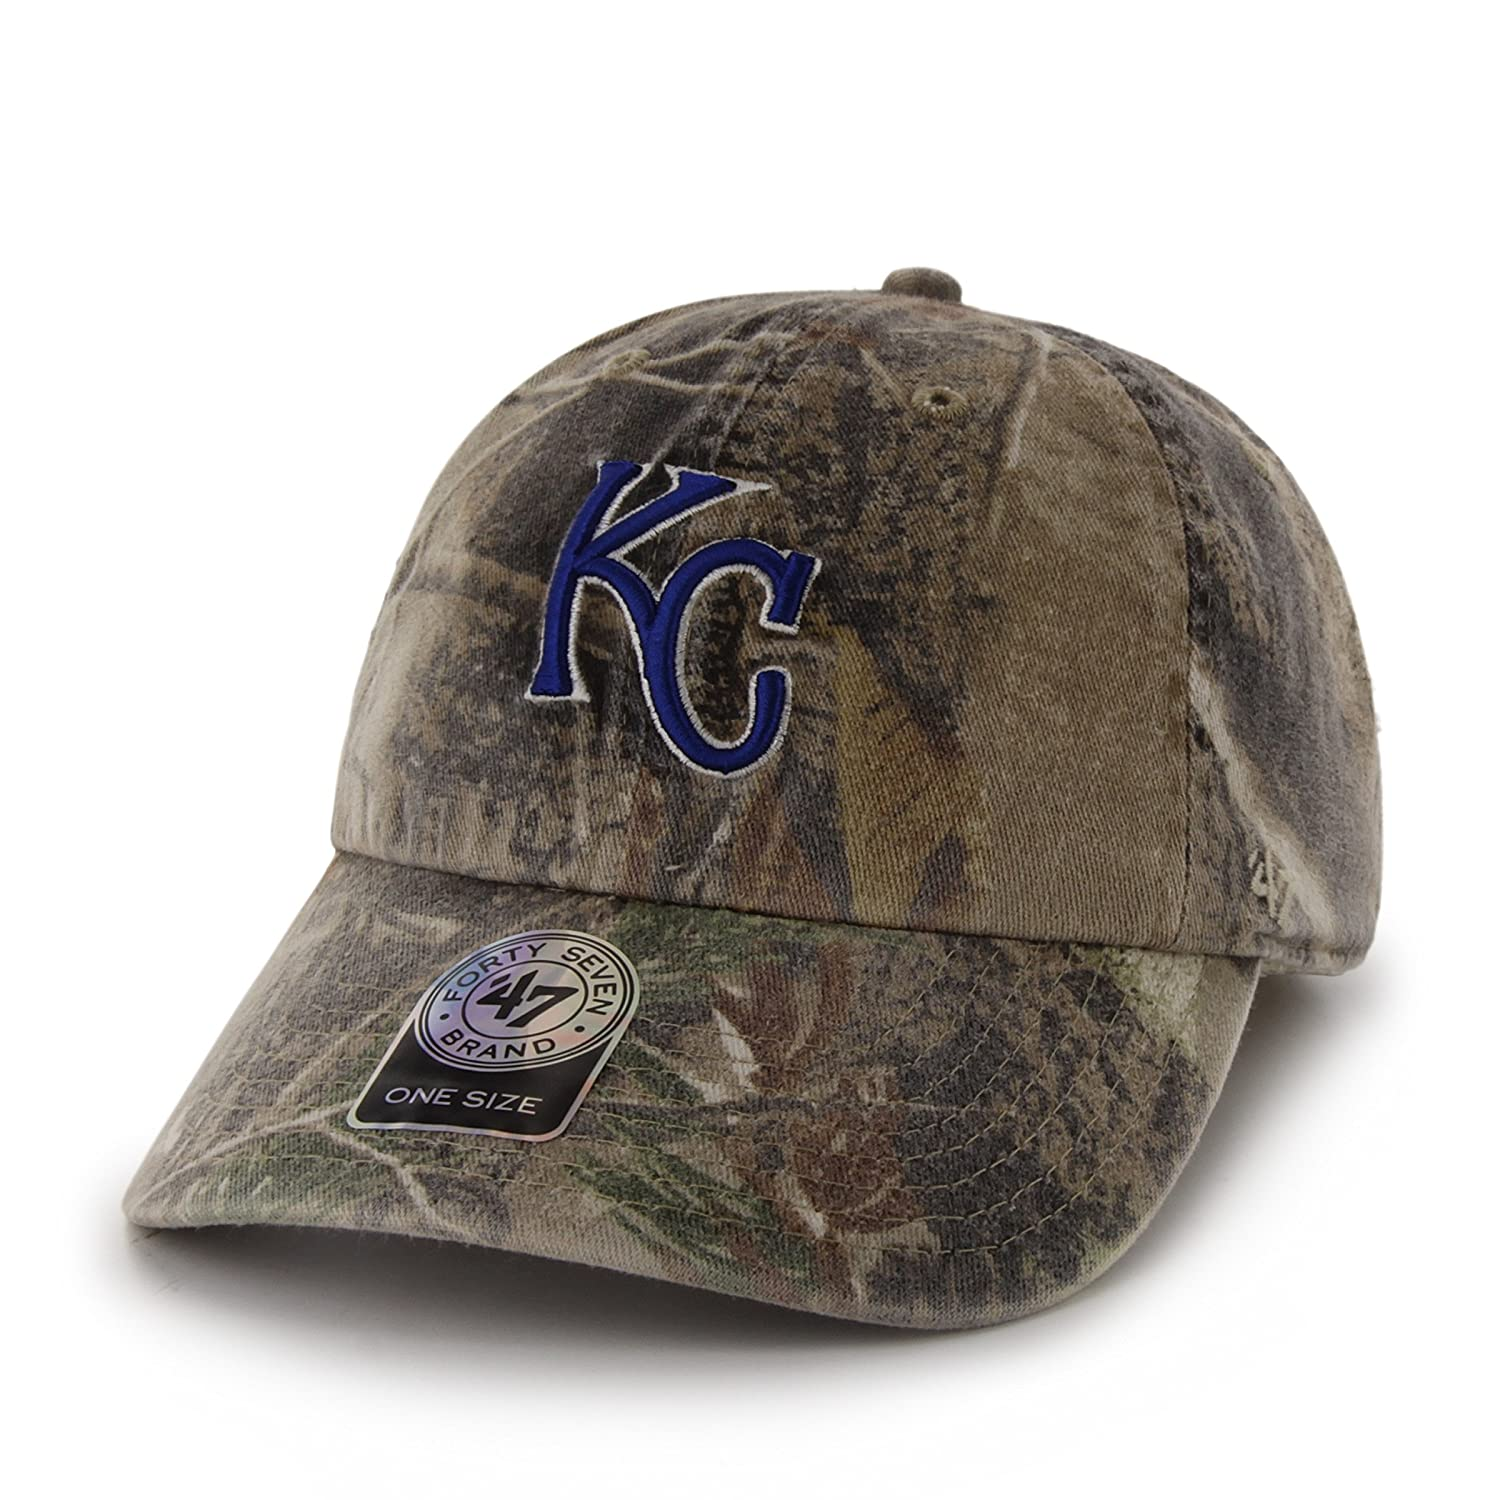 sale retailer cda4a 9dde9 Amazon.com    47 MLB Kansas City Royals Clean Up Adjustable Hat, One Size,  Realtree Camouflage   Sports Fan Baseball Caps   Clothing